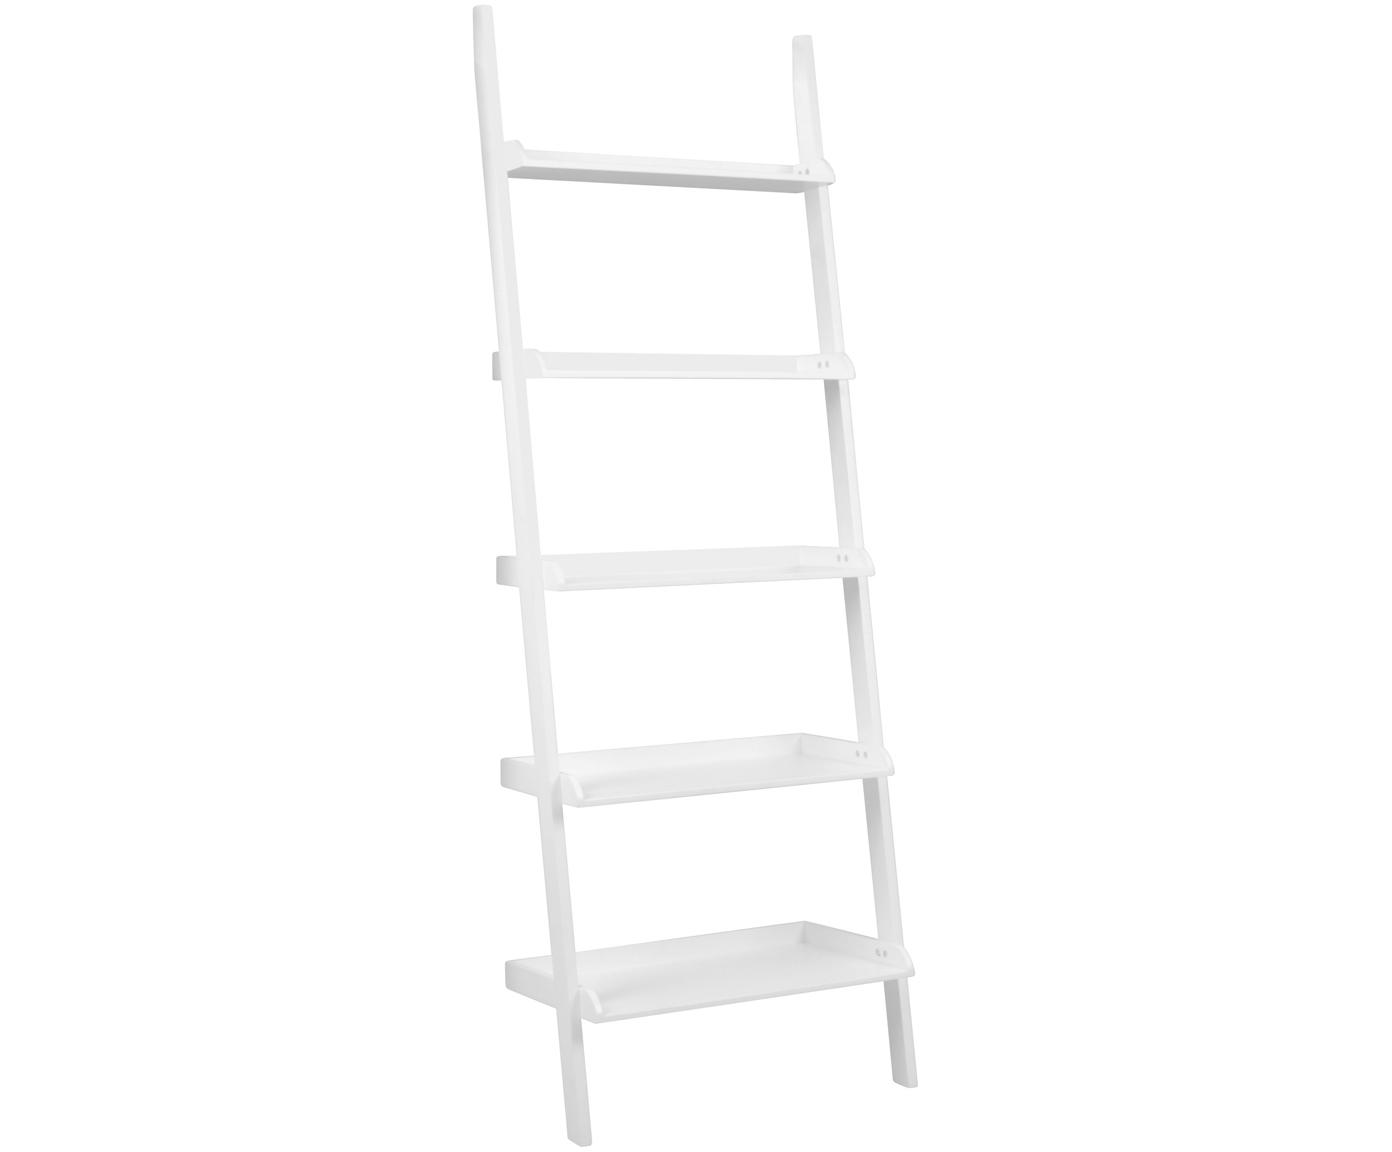 Ladder-wandkast Wally, Gelakt MDF, Wit, 67 x 189 cm